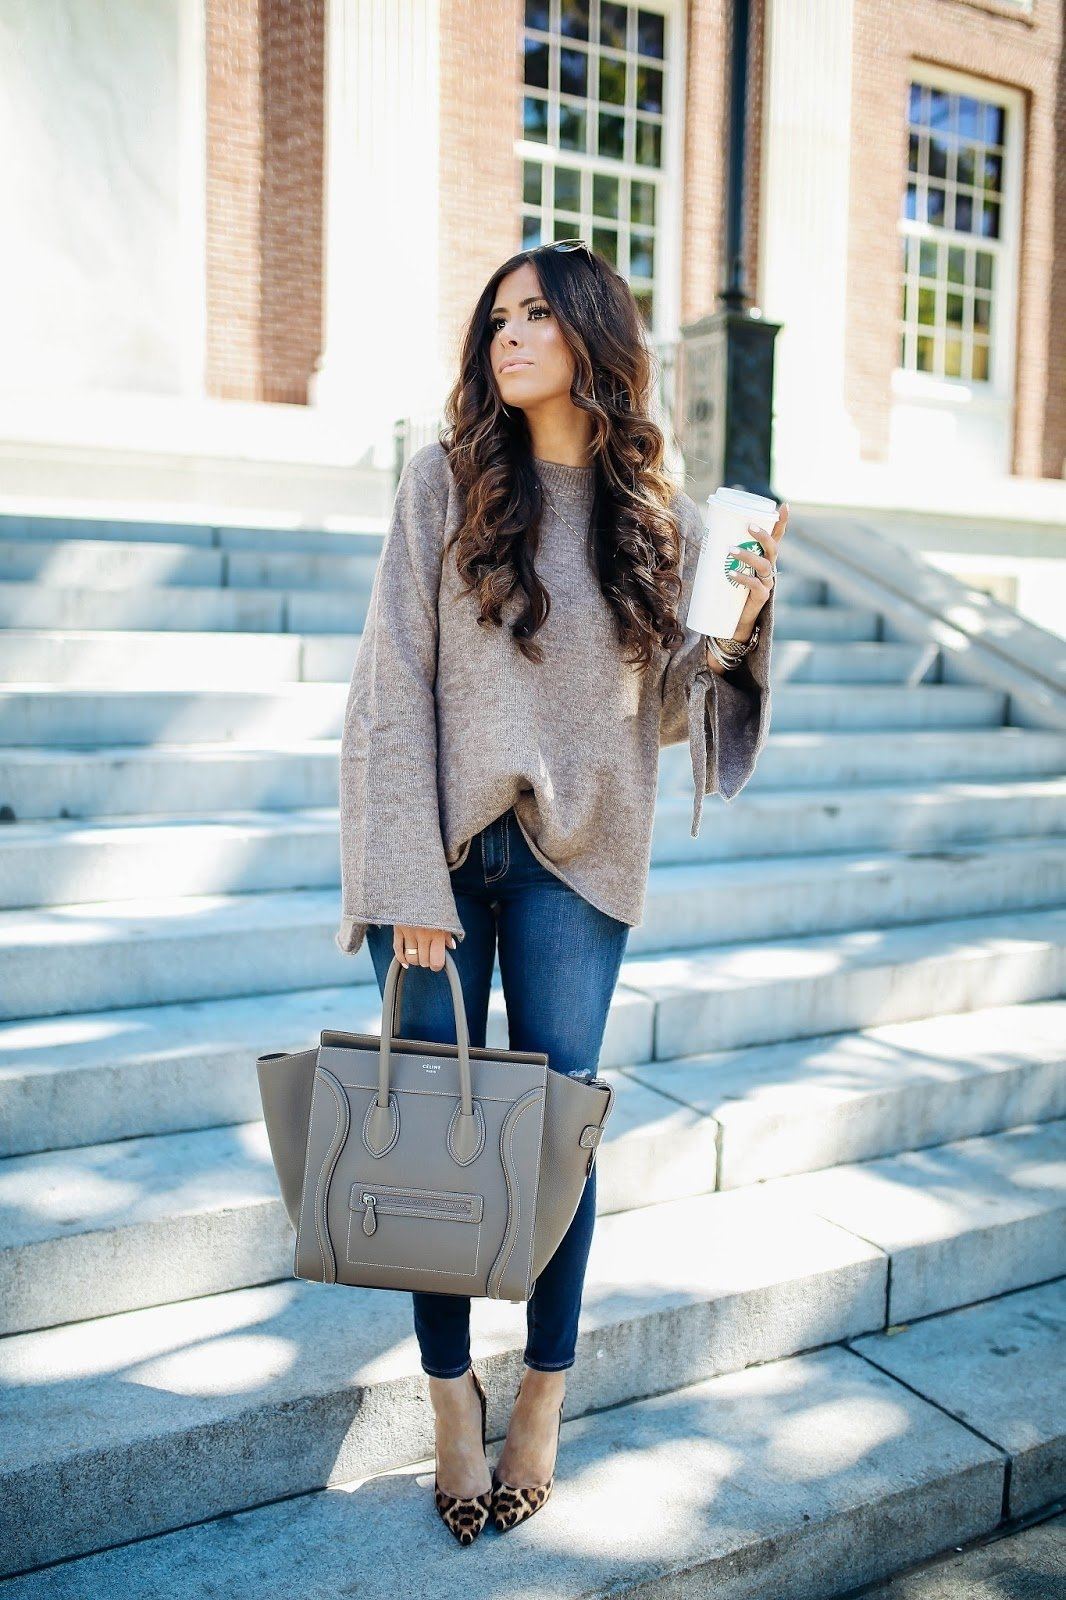 10 Most Recommended Pinterest Outfit Ideas For Fall a casual fall outfit from burlington vt the sweetest thing 2020